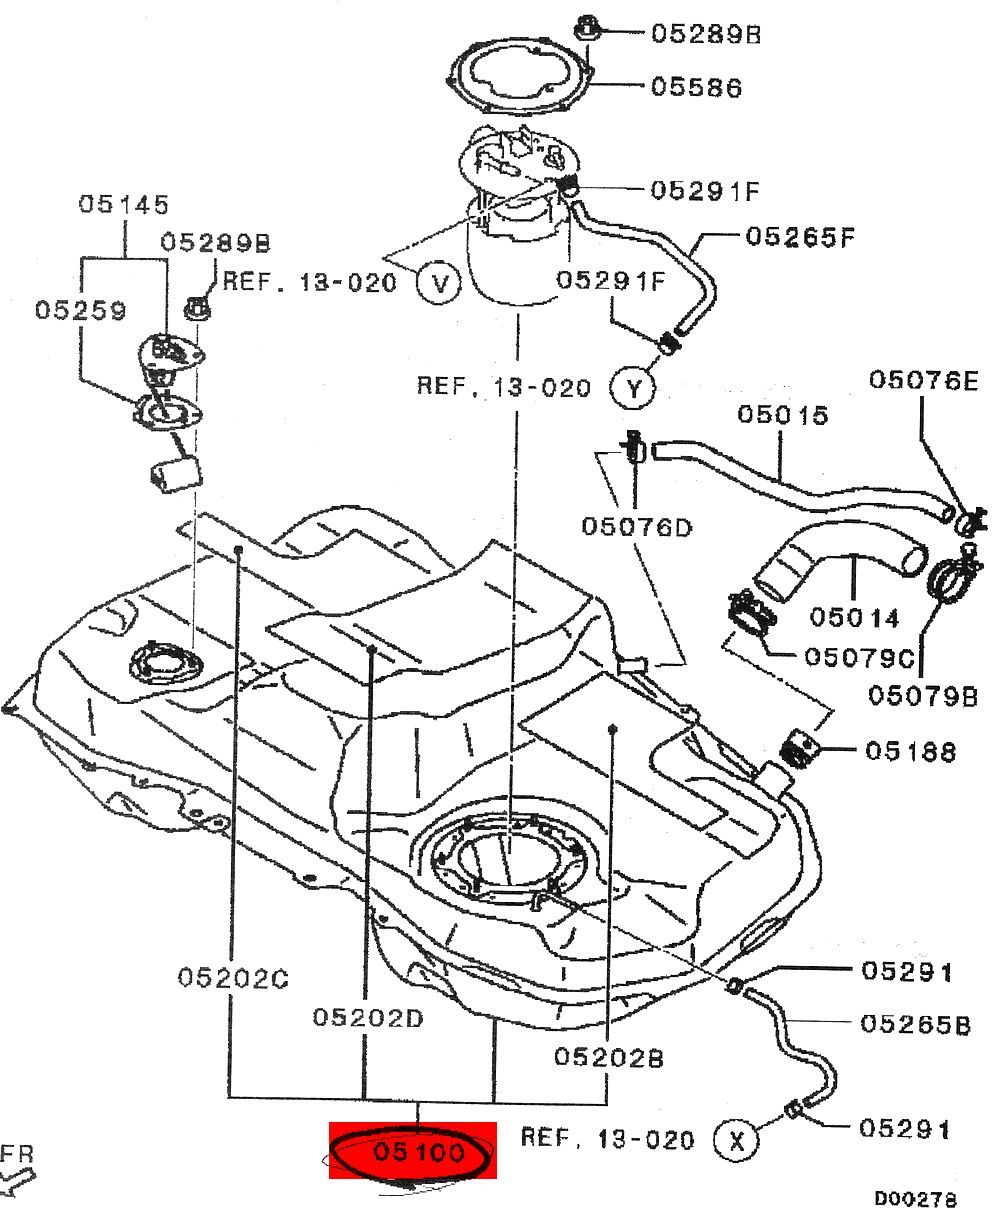 2003 toyota rav4 fuse box diagram  toyota  wiring diagram